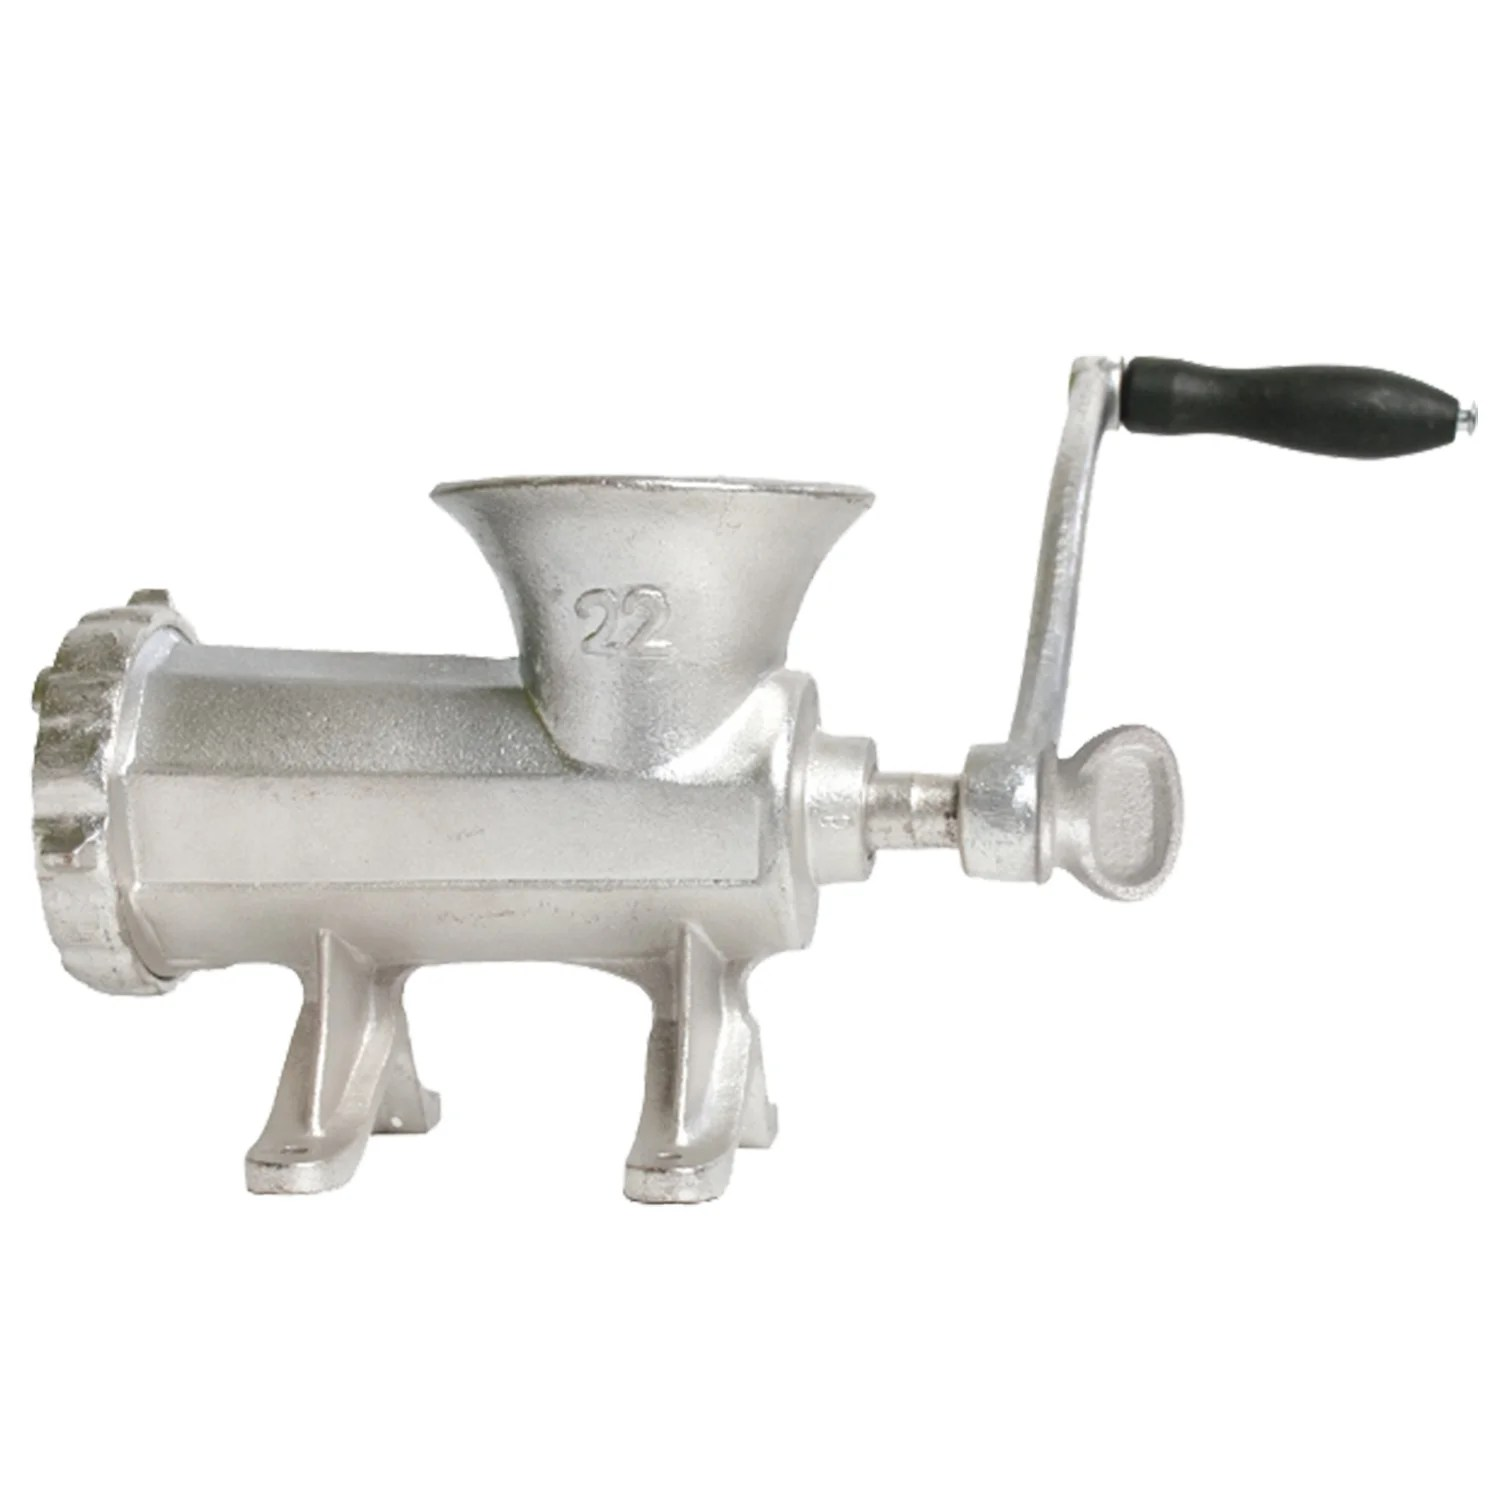 Cucina Pro Meat Grinder With Clamp Chard 22 Cast Iron Meat Grinder